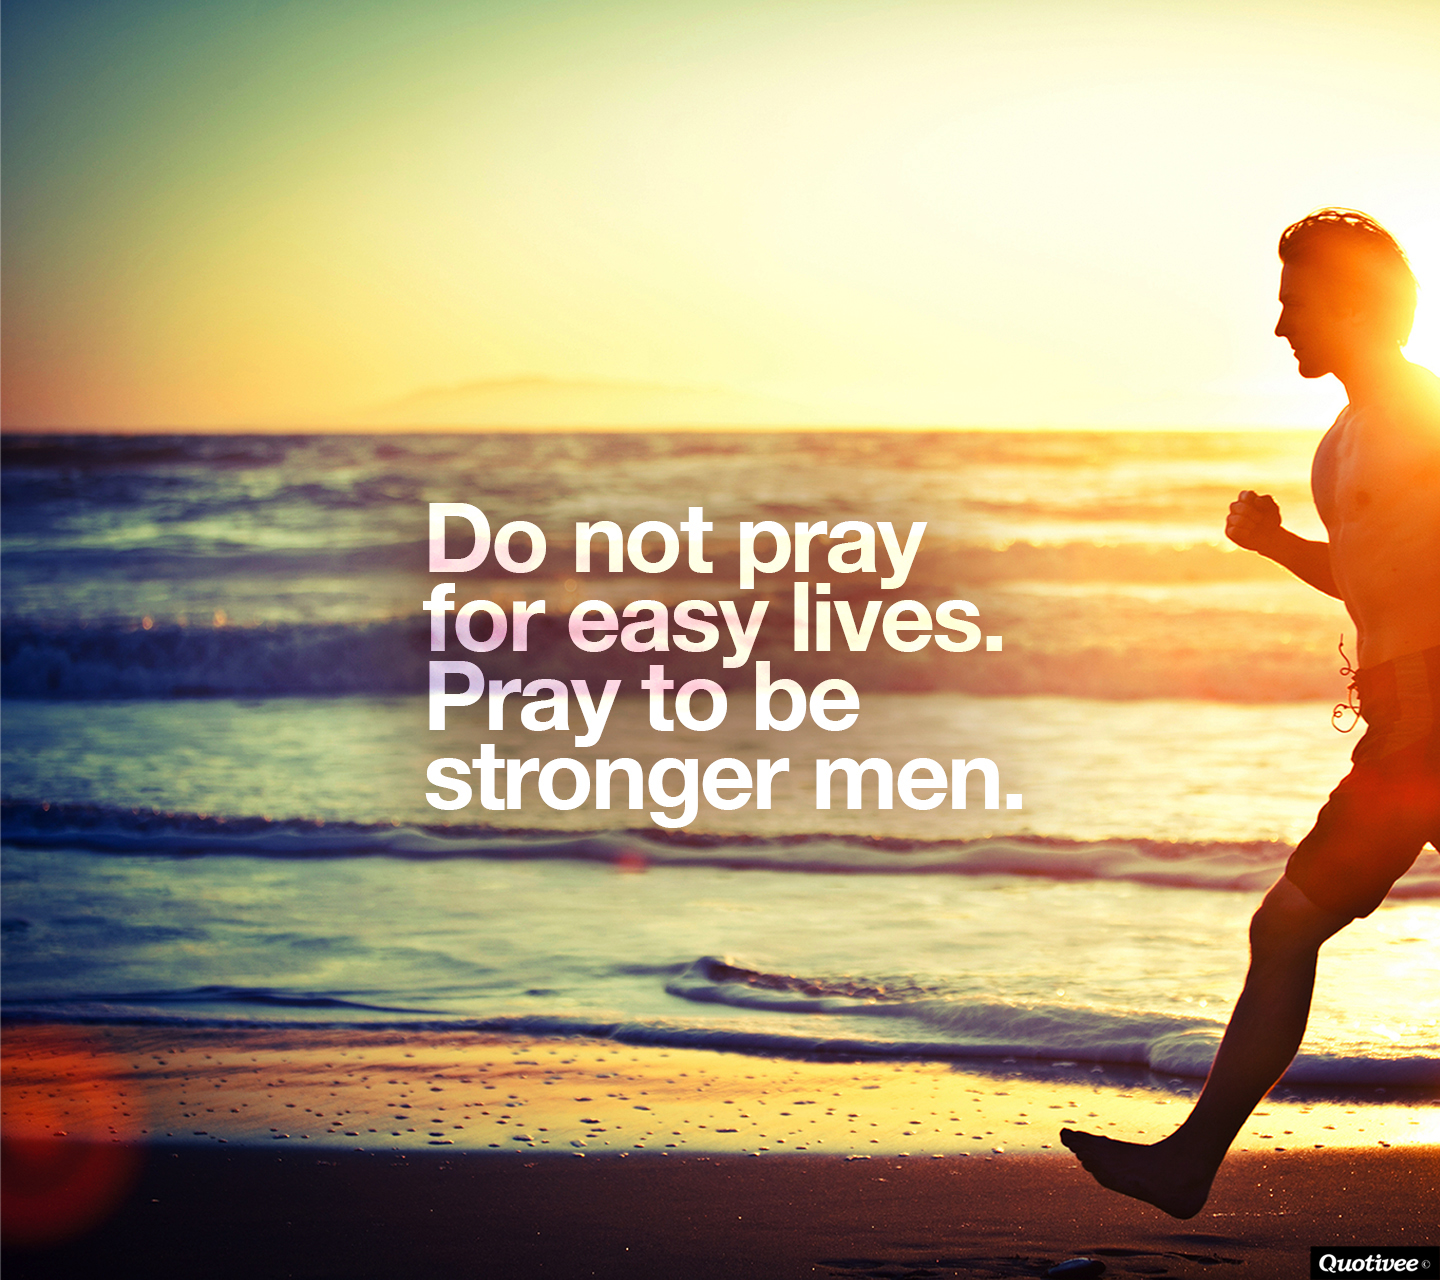 Stronger Men - Inspirational Quotes  Quotivee